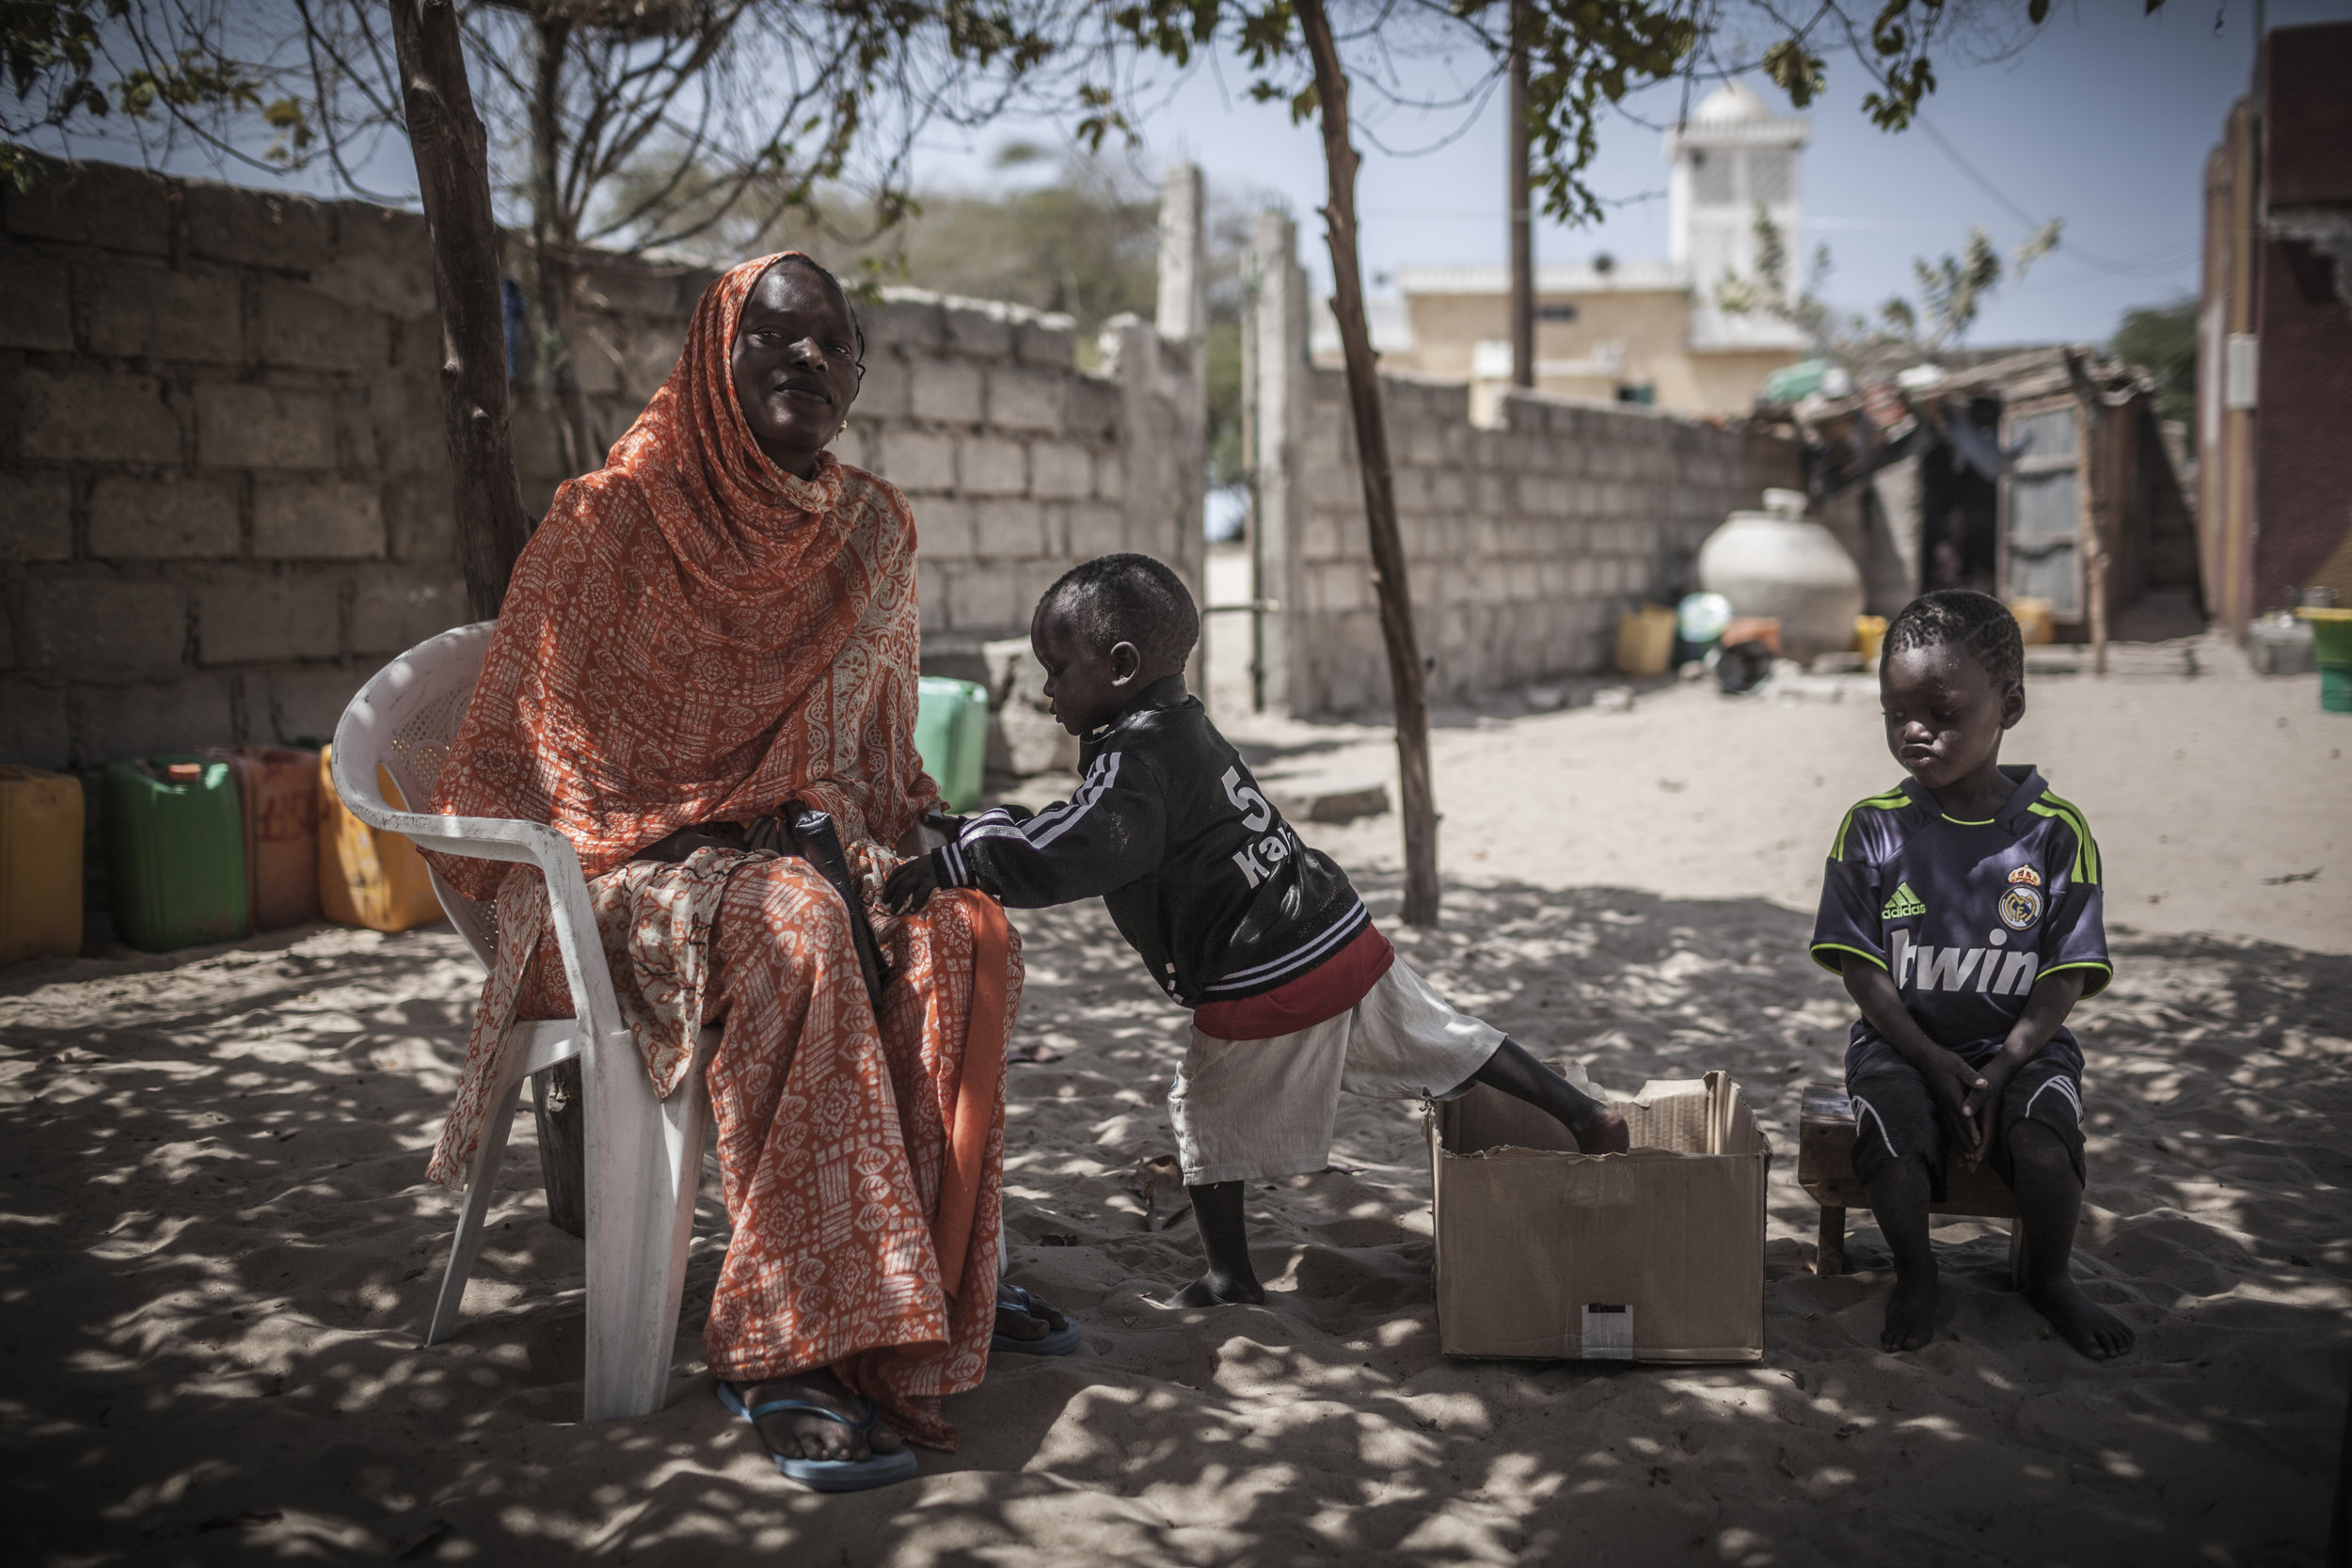 Saint-Louis region, Senegal. Khady, the wife of a missing migrant, benefits from a psychosocial project led by the ICRC and Senegalese Red Cross Society. She also attends literacy class and a program of financing and socio-economic support. ICRC/Jose Cendon